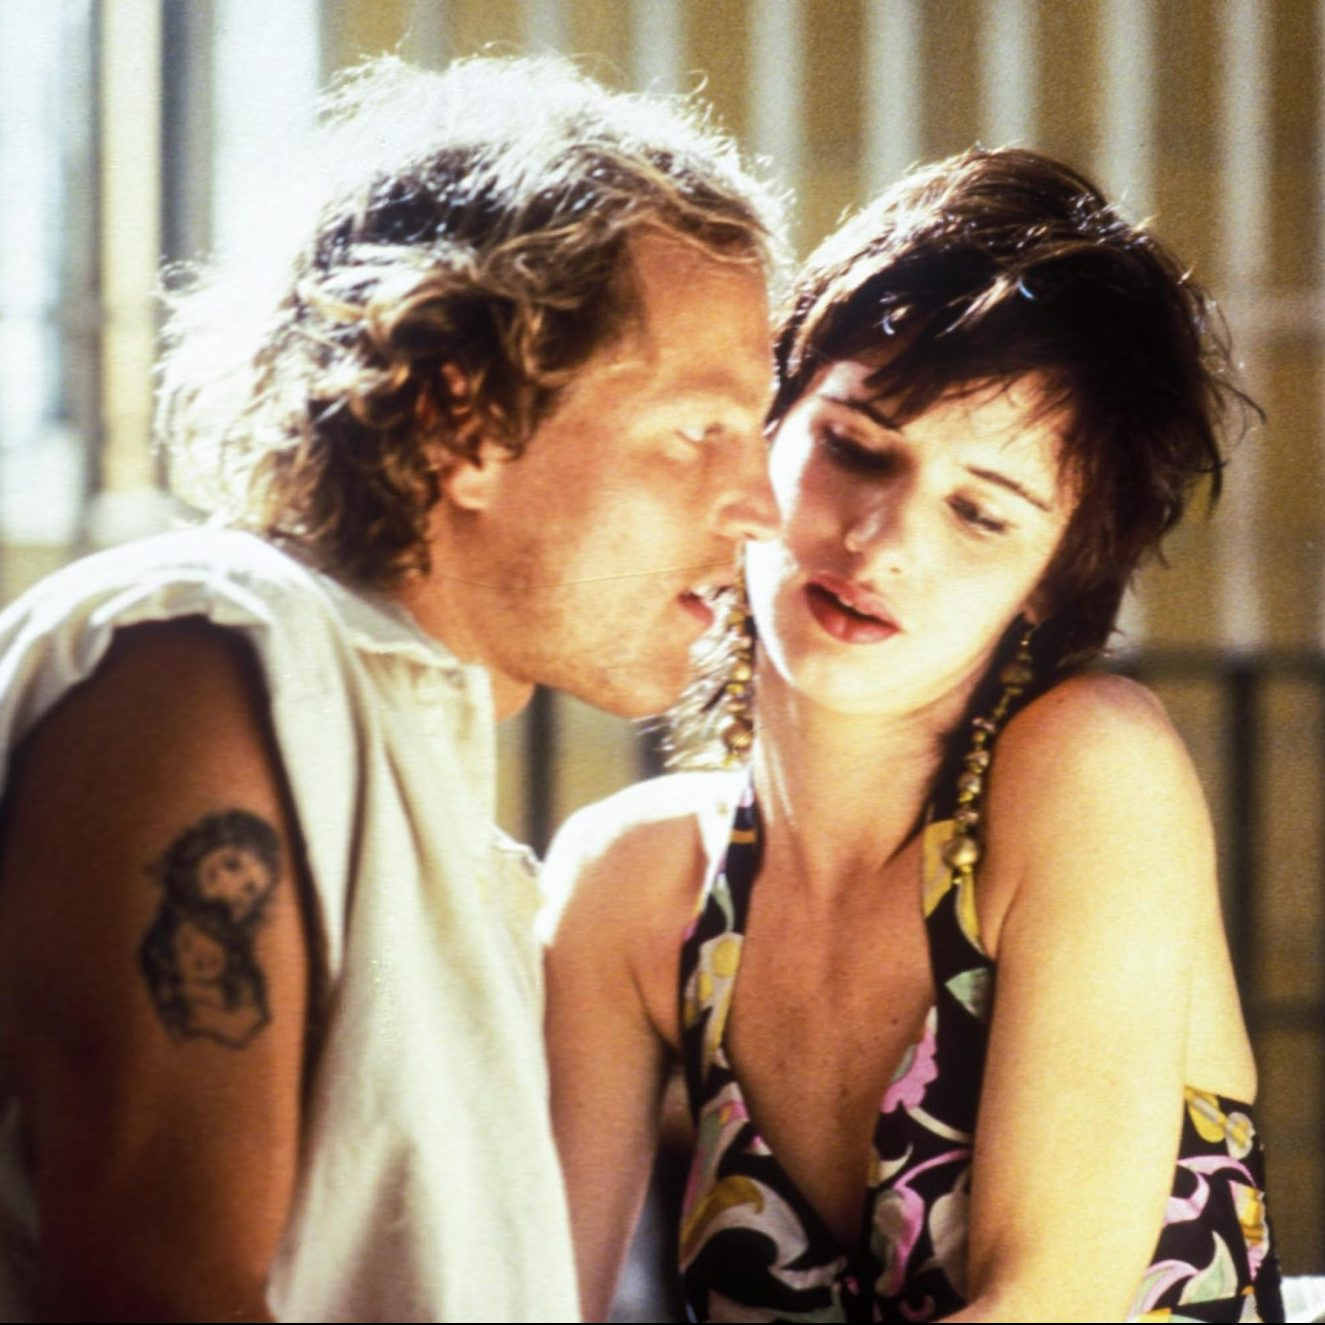 natural born killers 2000 e1600266722541 20 Things You Didn't Know About The Classic Film True Romance